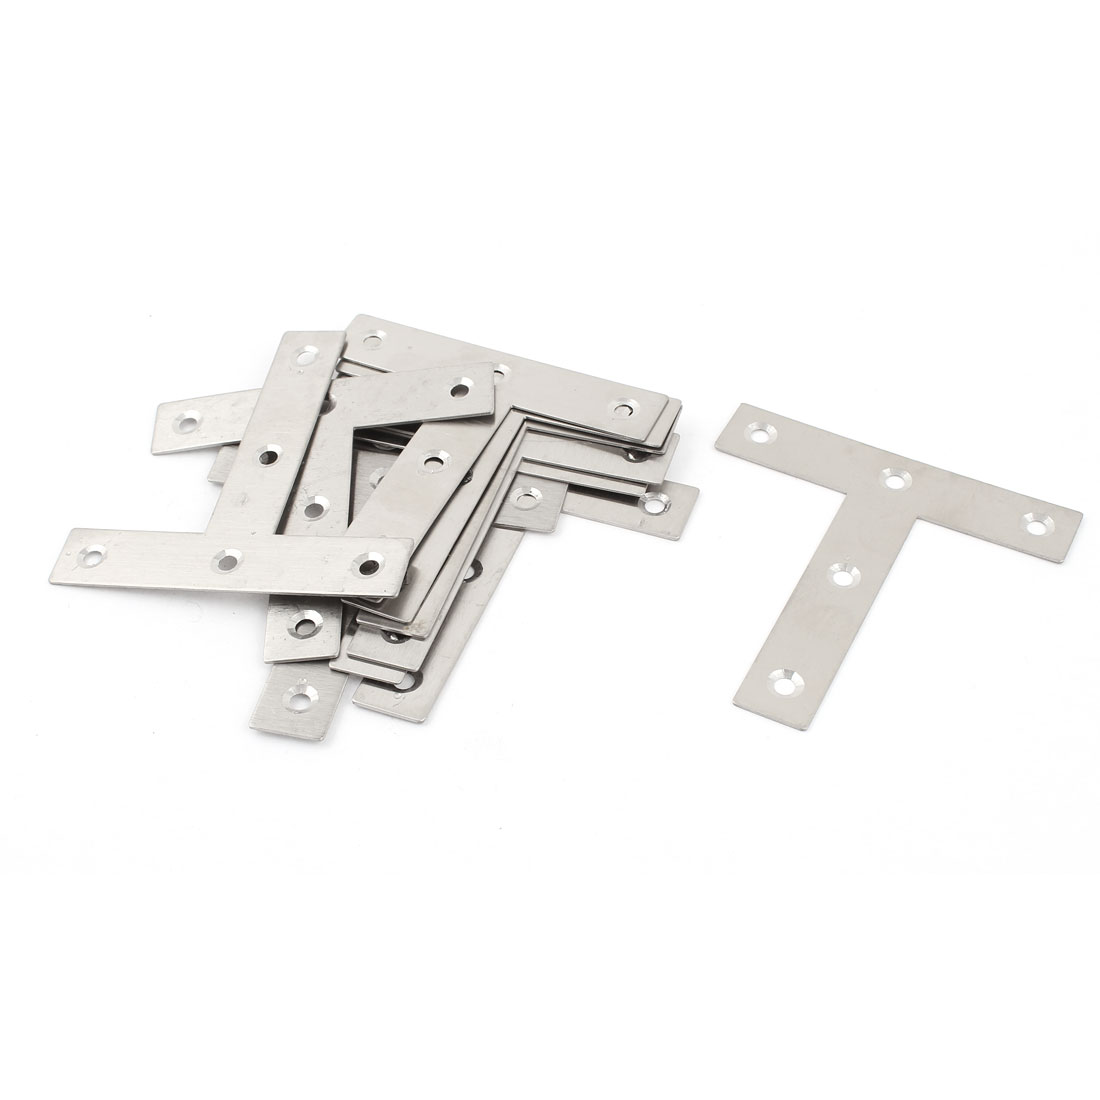 10 Pcs Silver Tone Stainless Steel Wall Mount T Style Support Shelf Bracket 8cm